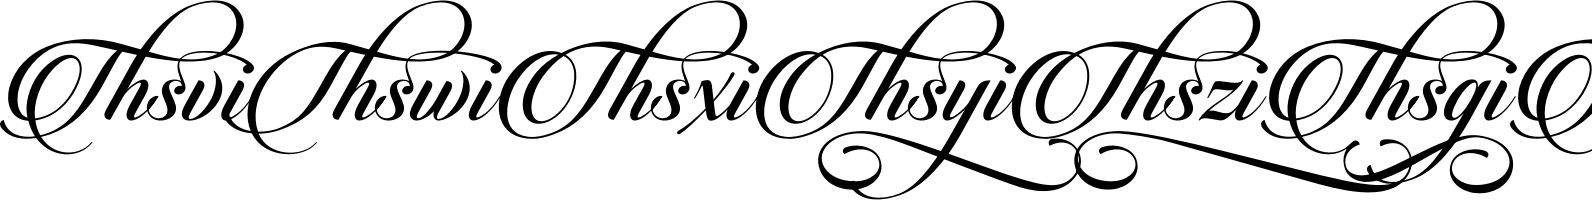 Candlescript Ligatures Mix